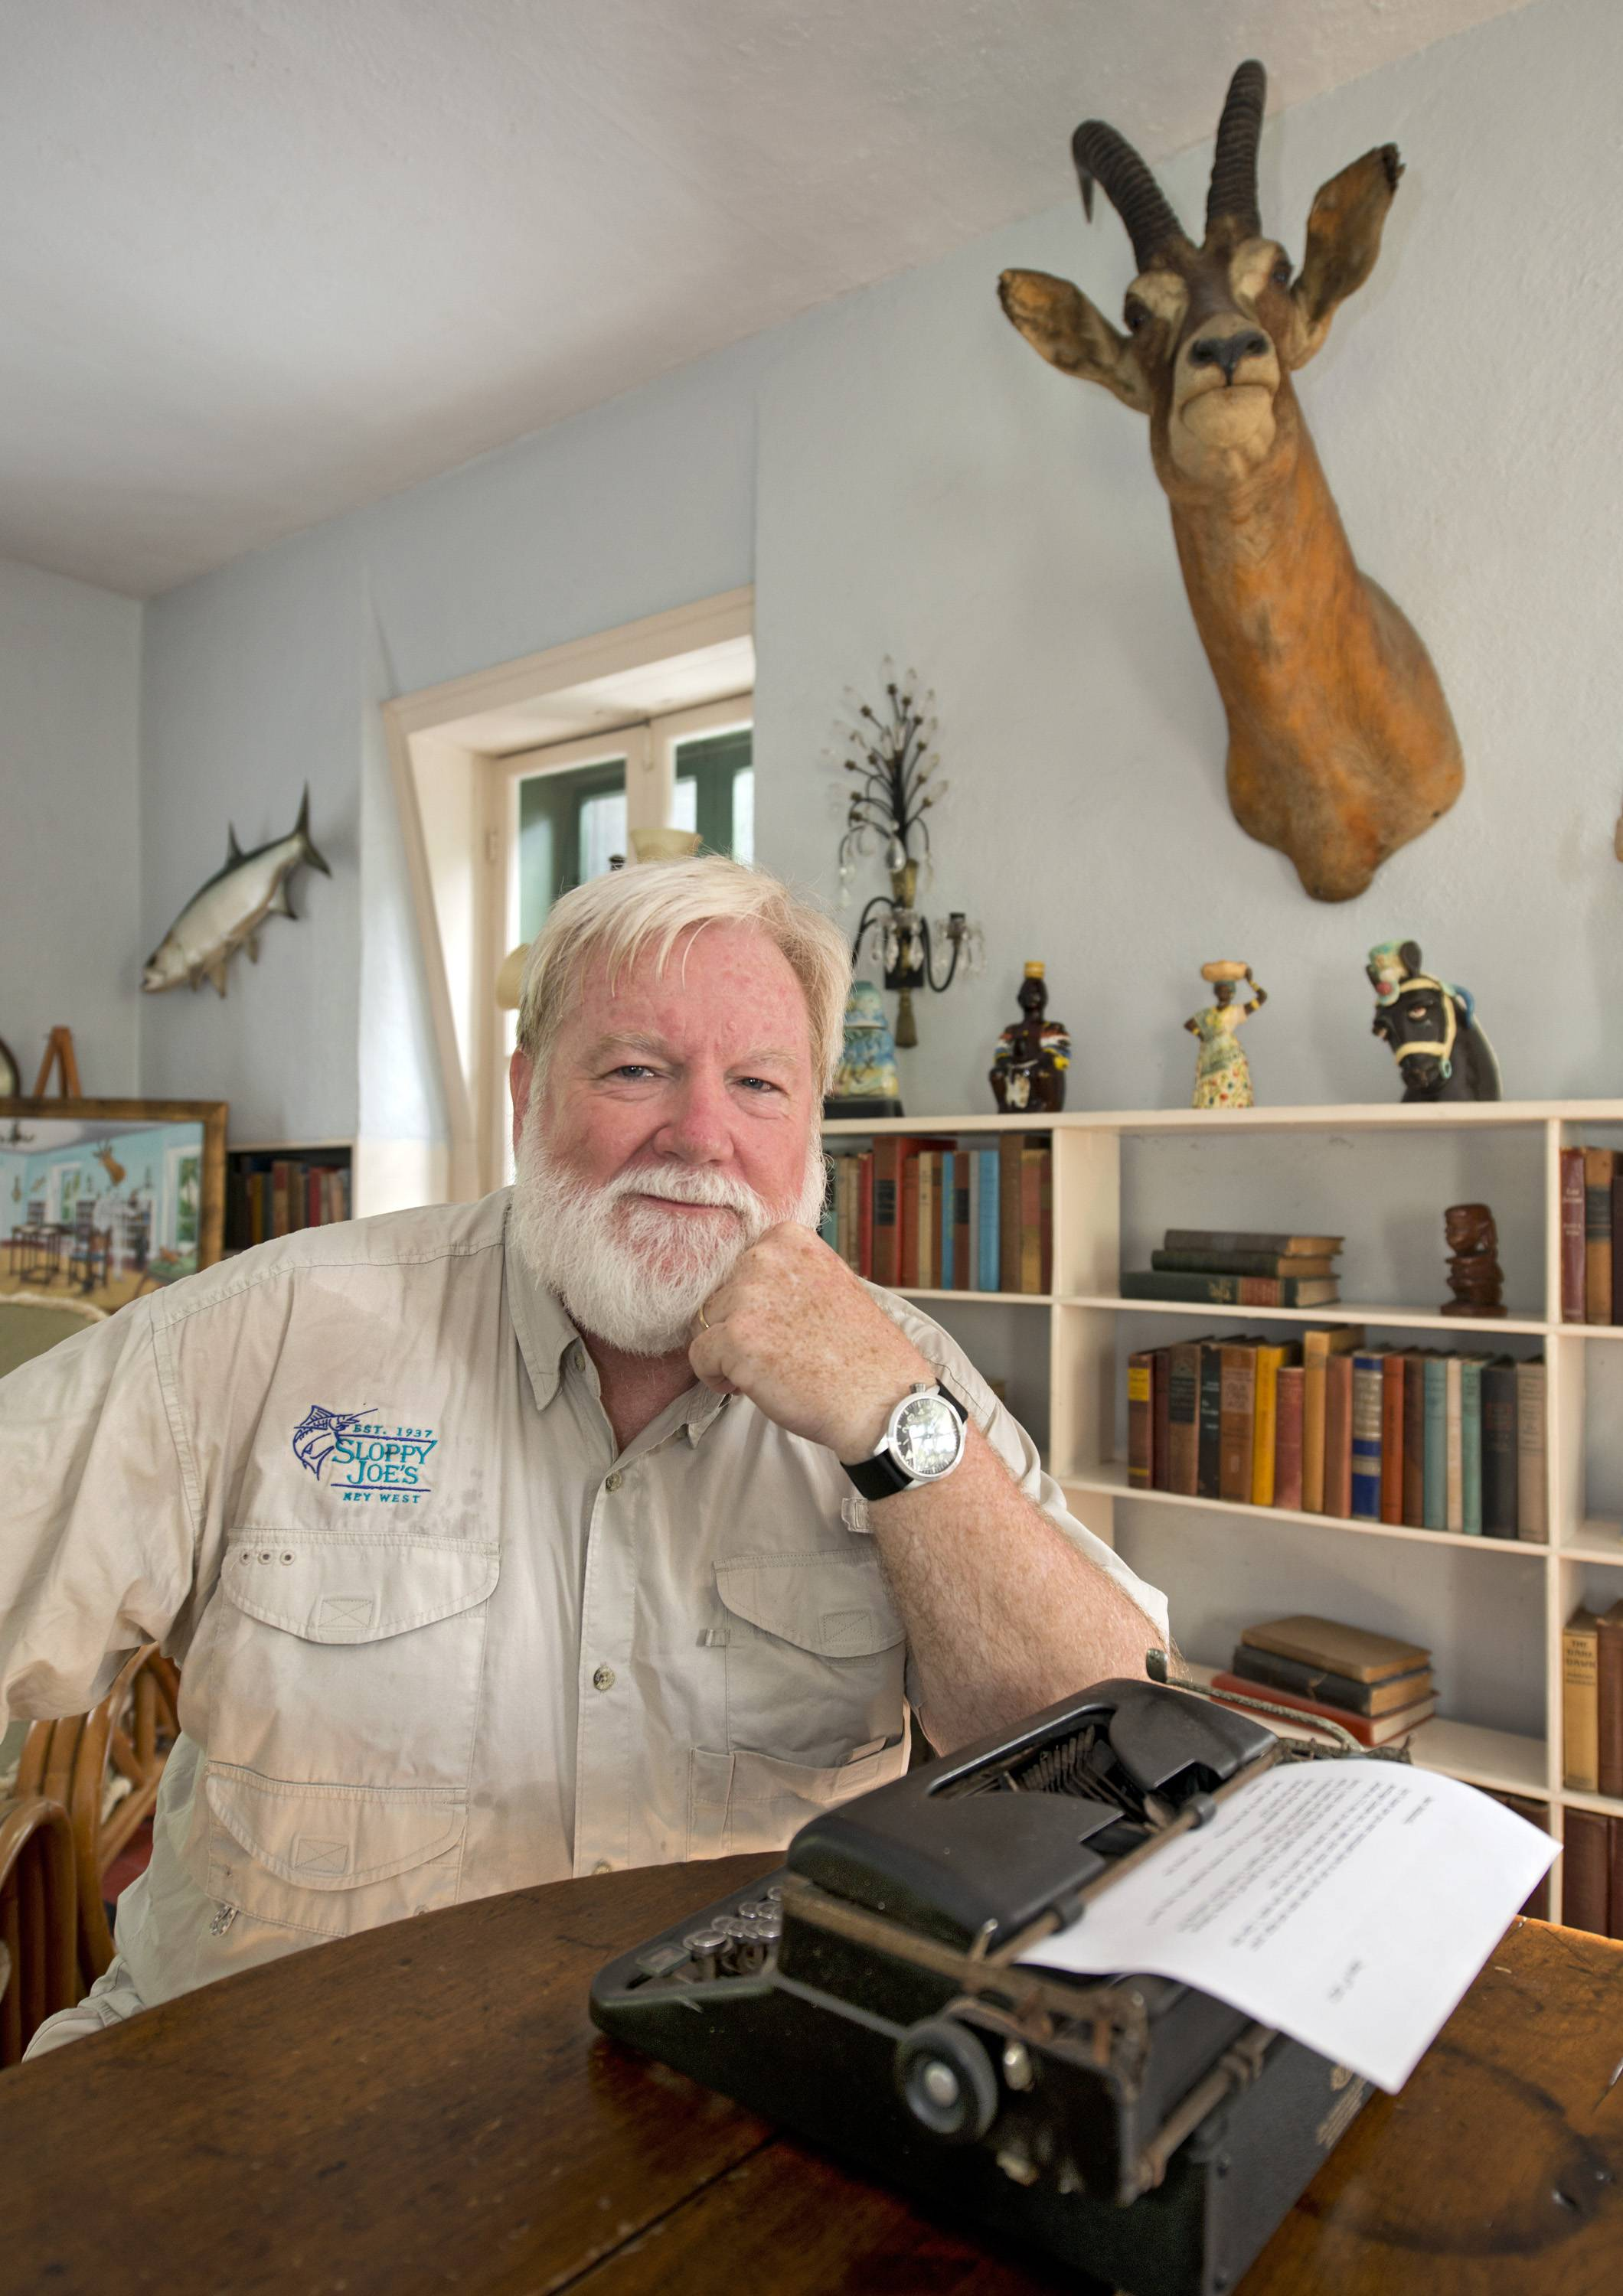 Stephen Terry, sitting in Ernest Hemingway's one-time study at the Hemingway Home and Museum in Key West, Fla., beat 125 other contestants in the 2013 Ernest Hemingway look-alike contest during Key West's annual Hemingway Days celebrating the anniversary of the author's birth.